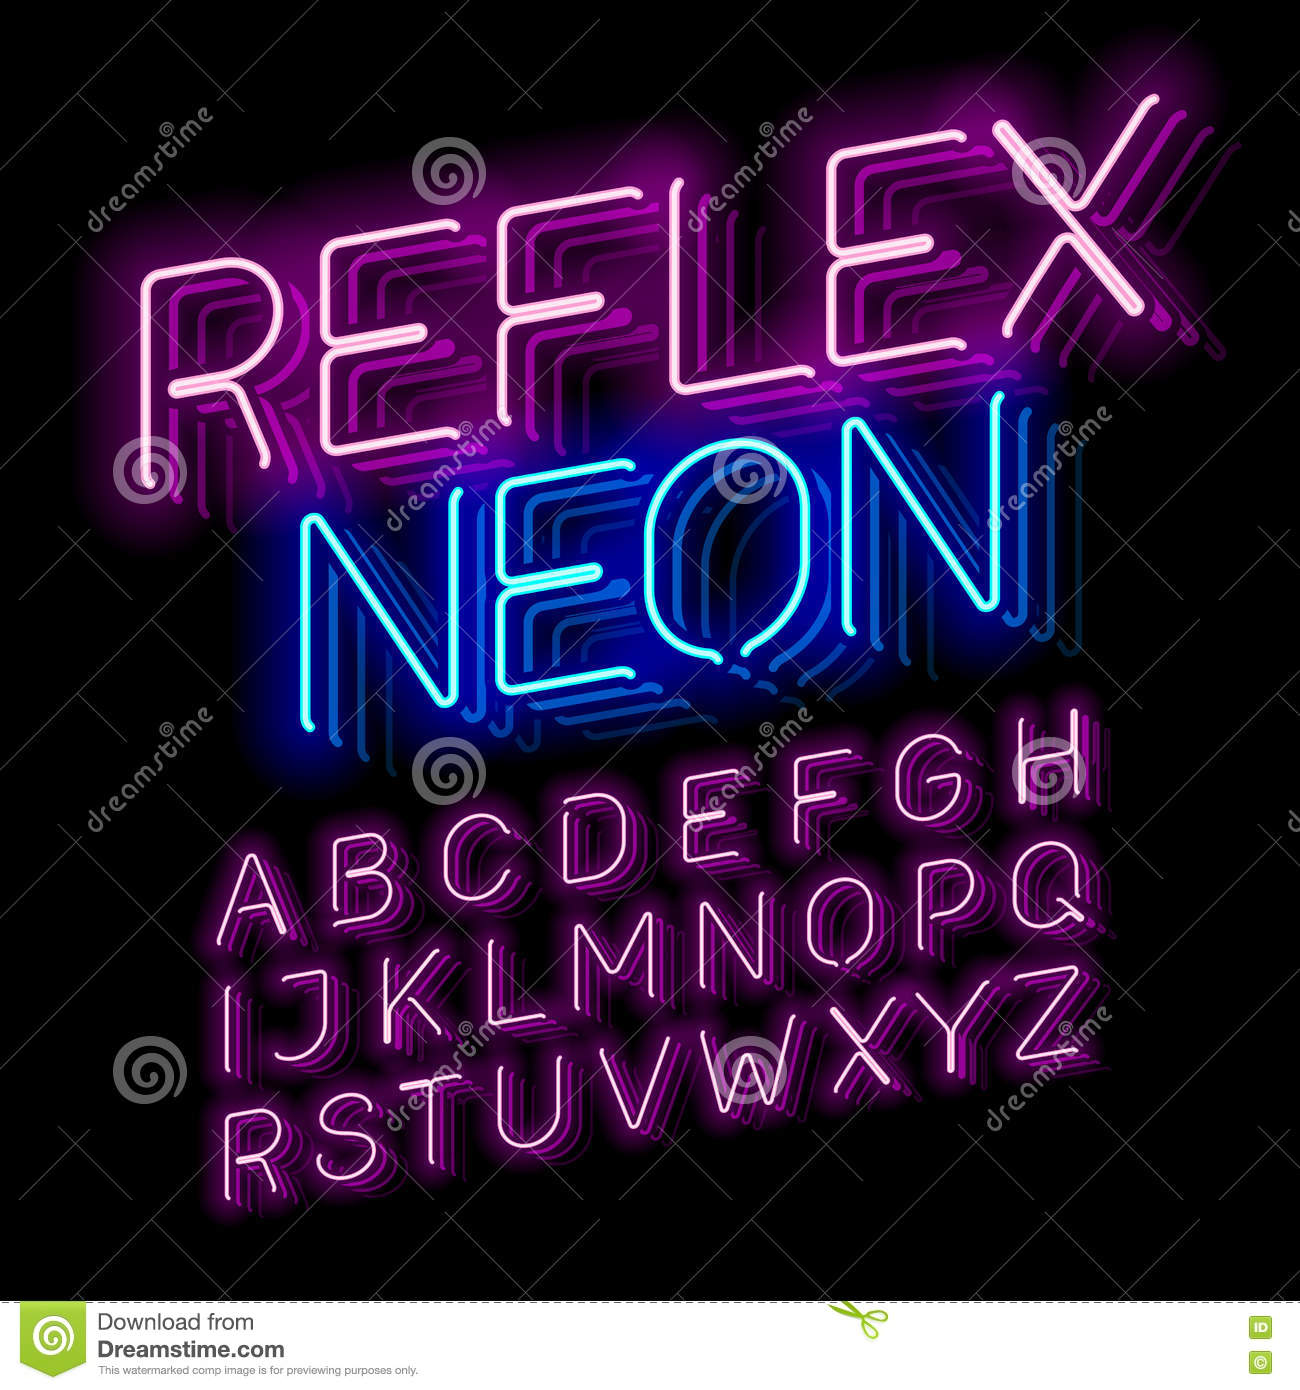 Retro Glass Neon Font Vector Illustration